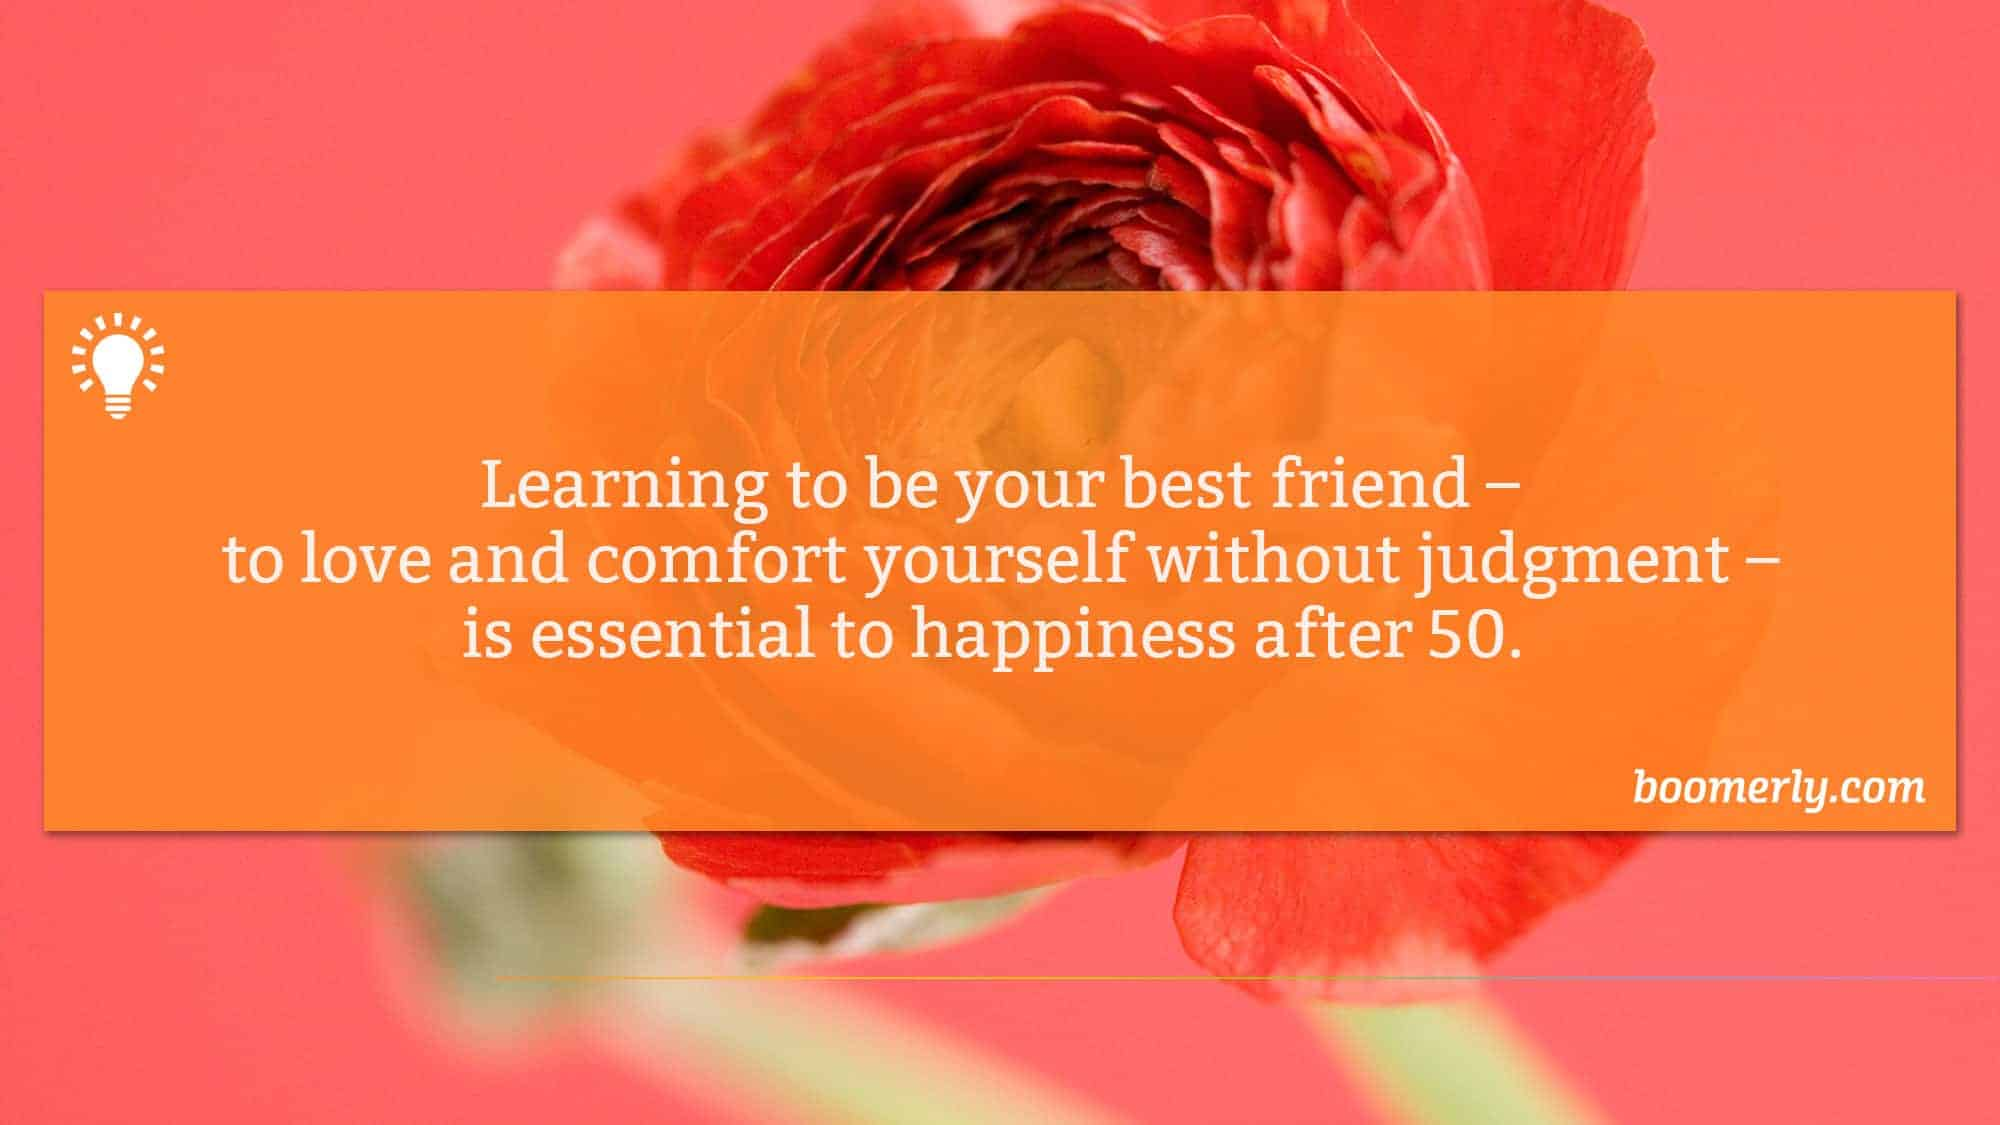 Find happiness - Learning to be your best friend – to love and comfort yourself without judgment – is essential to happiness after 60.